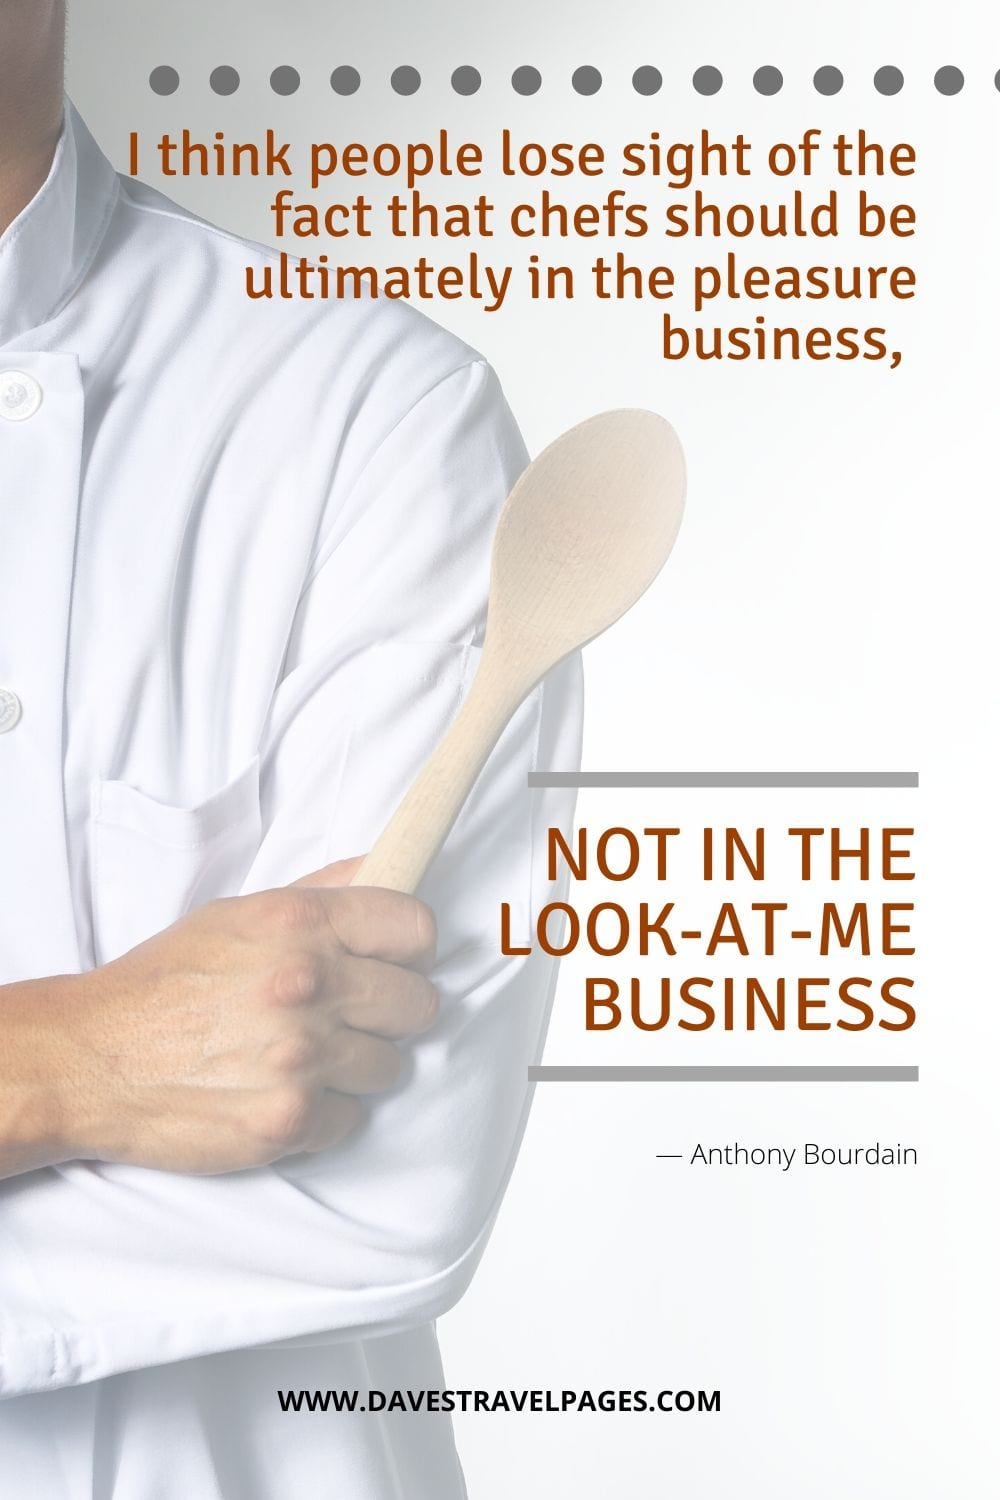 """""""I think people lose sight of the fact that chefs should be ultimately in the pleasure business, not in the look-at-me business.""""― Anthony Bourdain"""